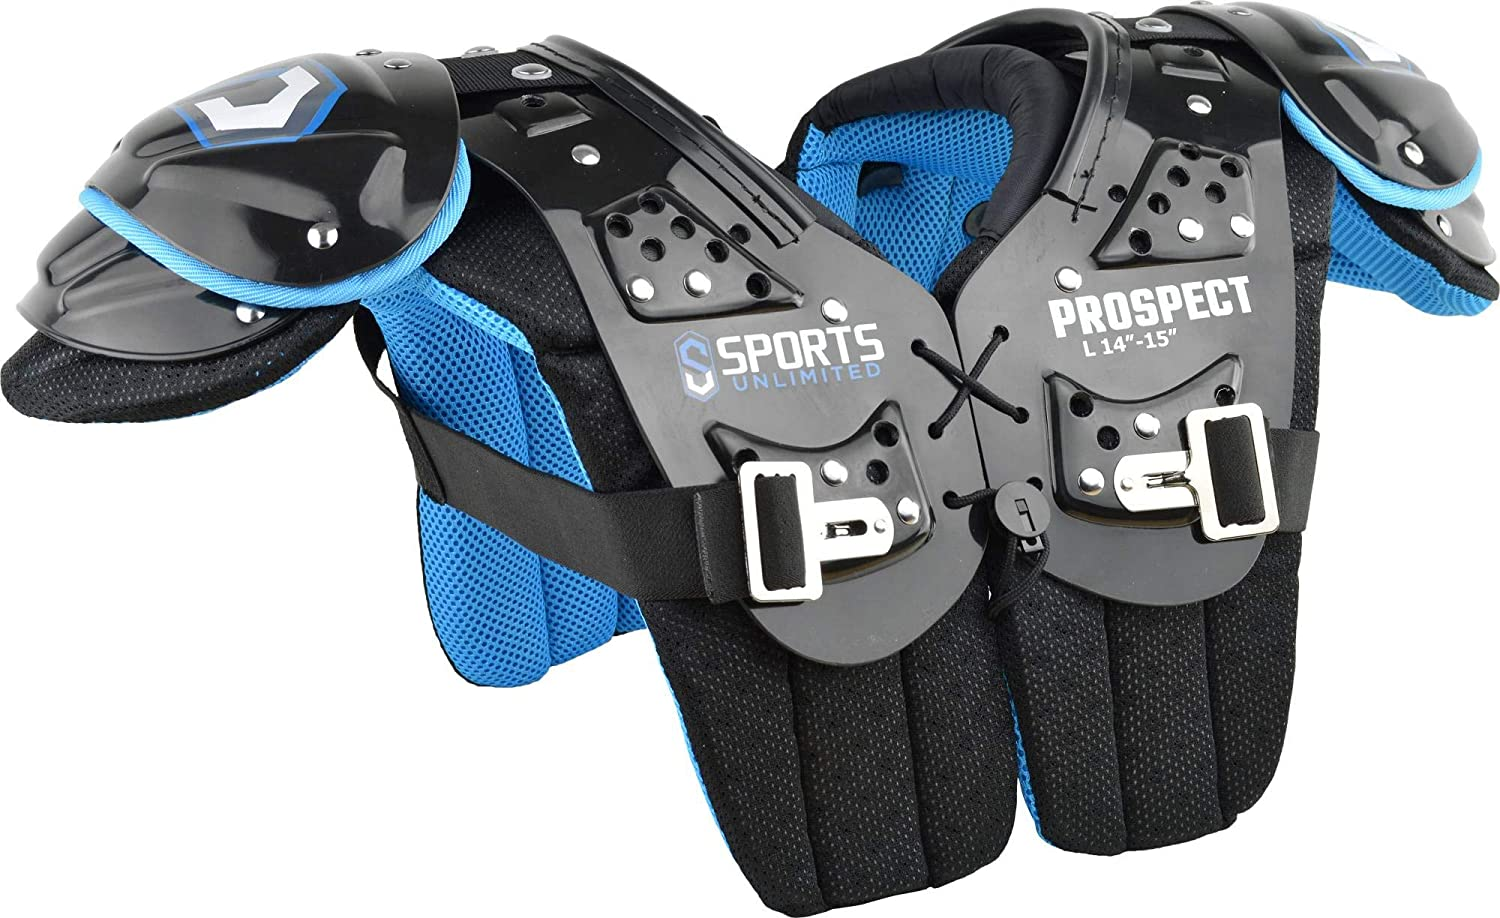 Sports Ultimate Prospect Youth Football Shoulders Pad